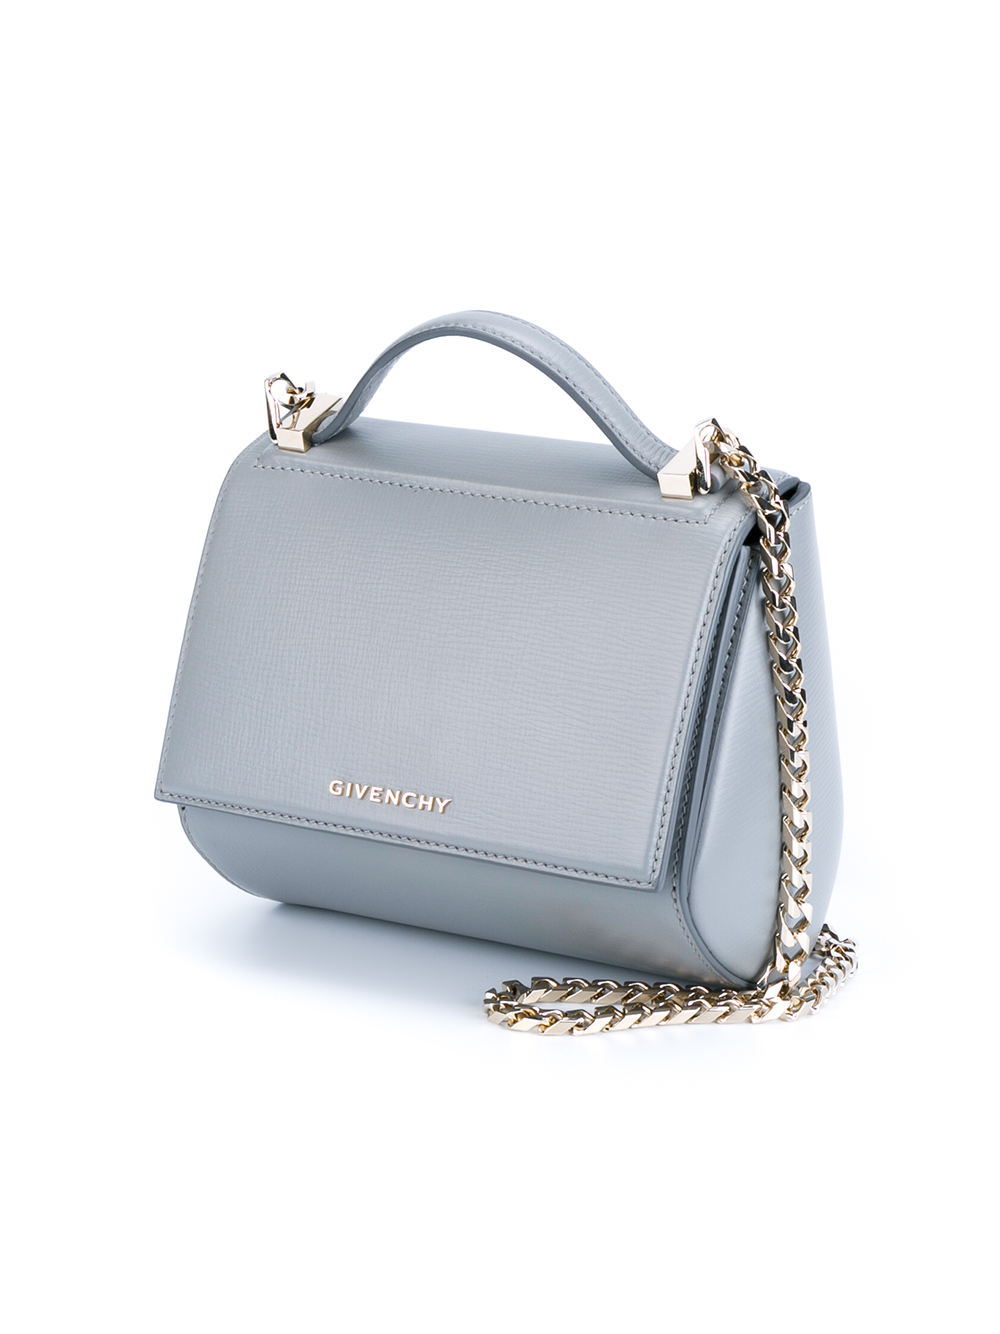 Givenchy Leather Pandora Box Handbag in Gray - Lyst a4711fd60c